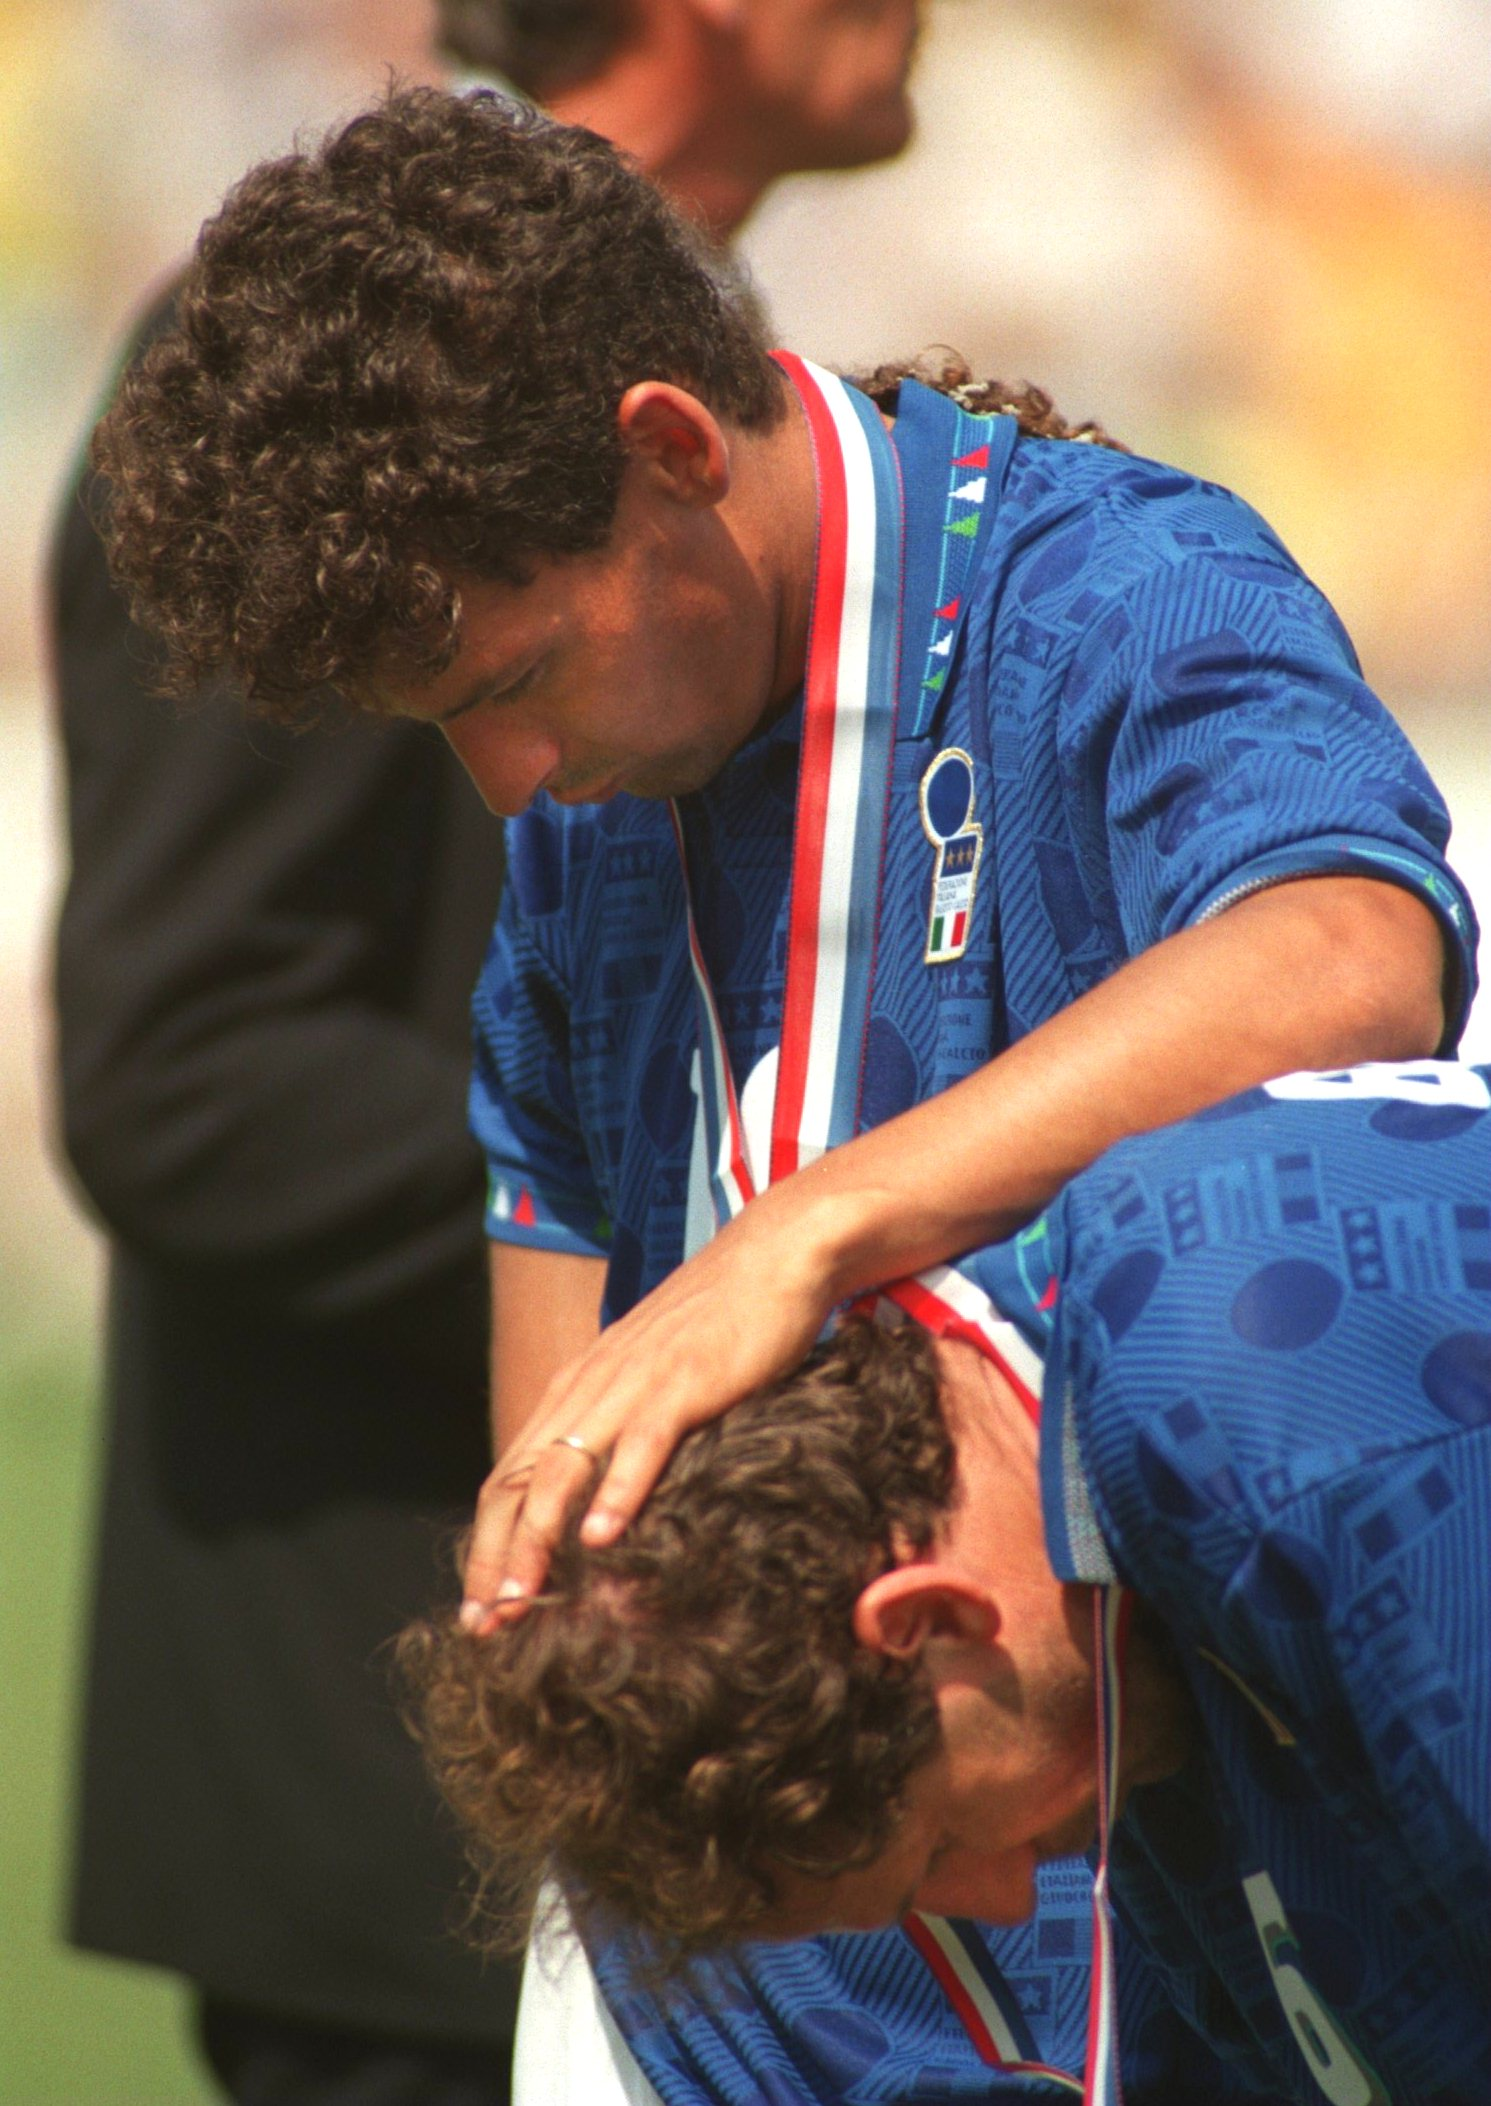 17 Jul 1994: ROBERTO BAGGIO CONSOLES THE ITALIAN CAPTAIN FRANCO BARESI AFTER THE 1994 WORLD CUP FINAL AT THE ROSE BOWL STADIUM IN PASADENA CALIFORNIA. BRAZIL WON THE WORLD CUP ON PENALTIES.